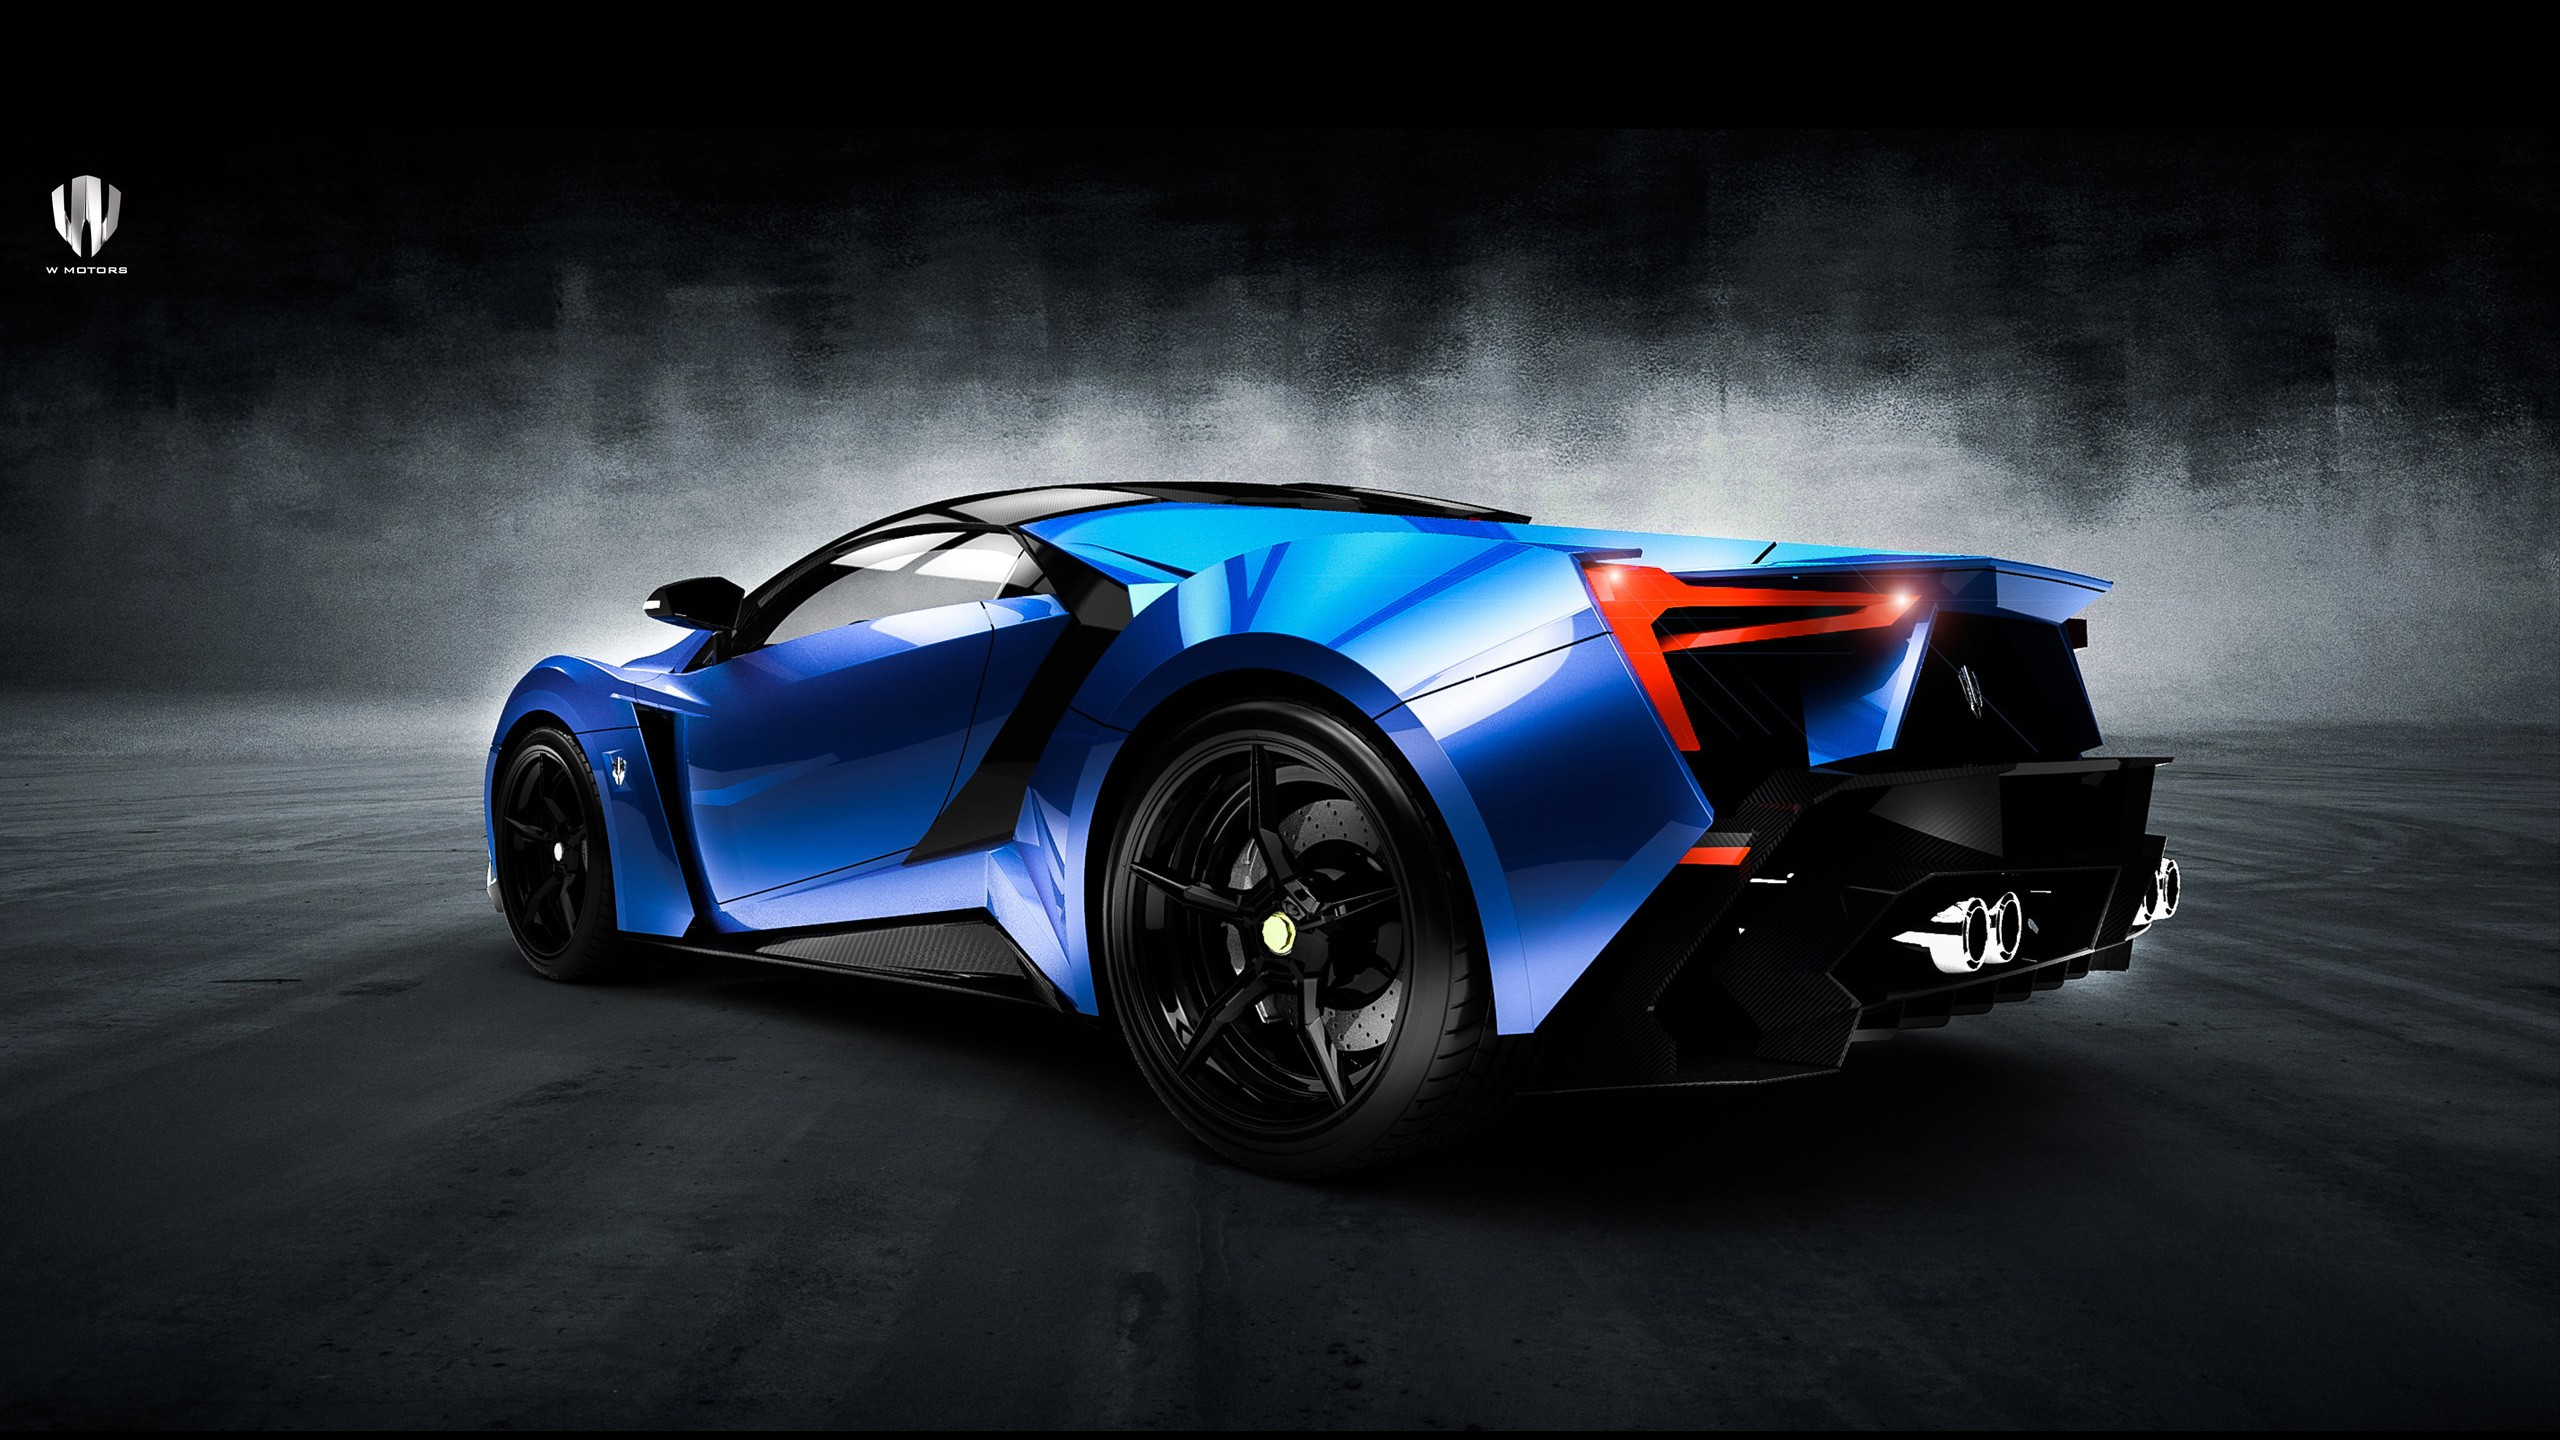 2015 w motors lykan supersport 3 wallpaper hd car - Lykan hypersport wallpaper 1920x1080 ...